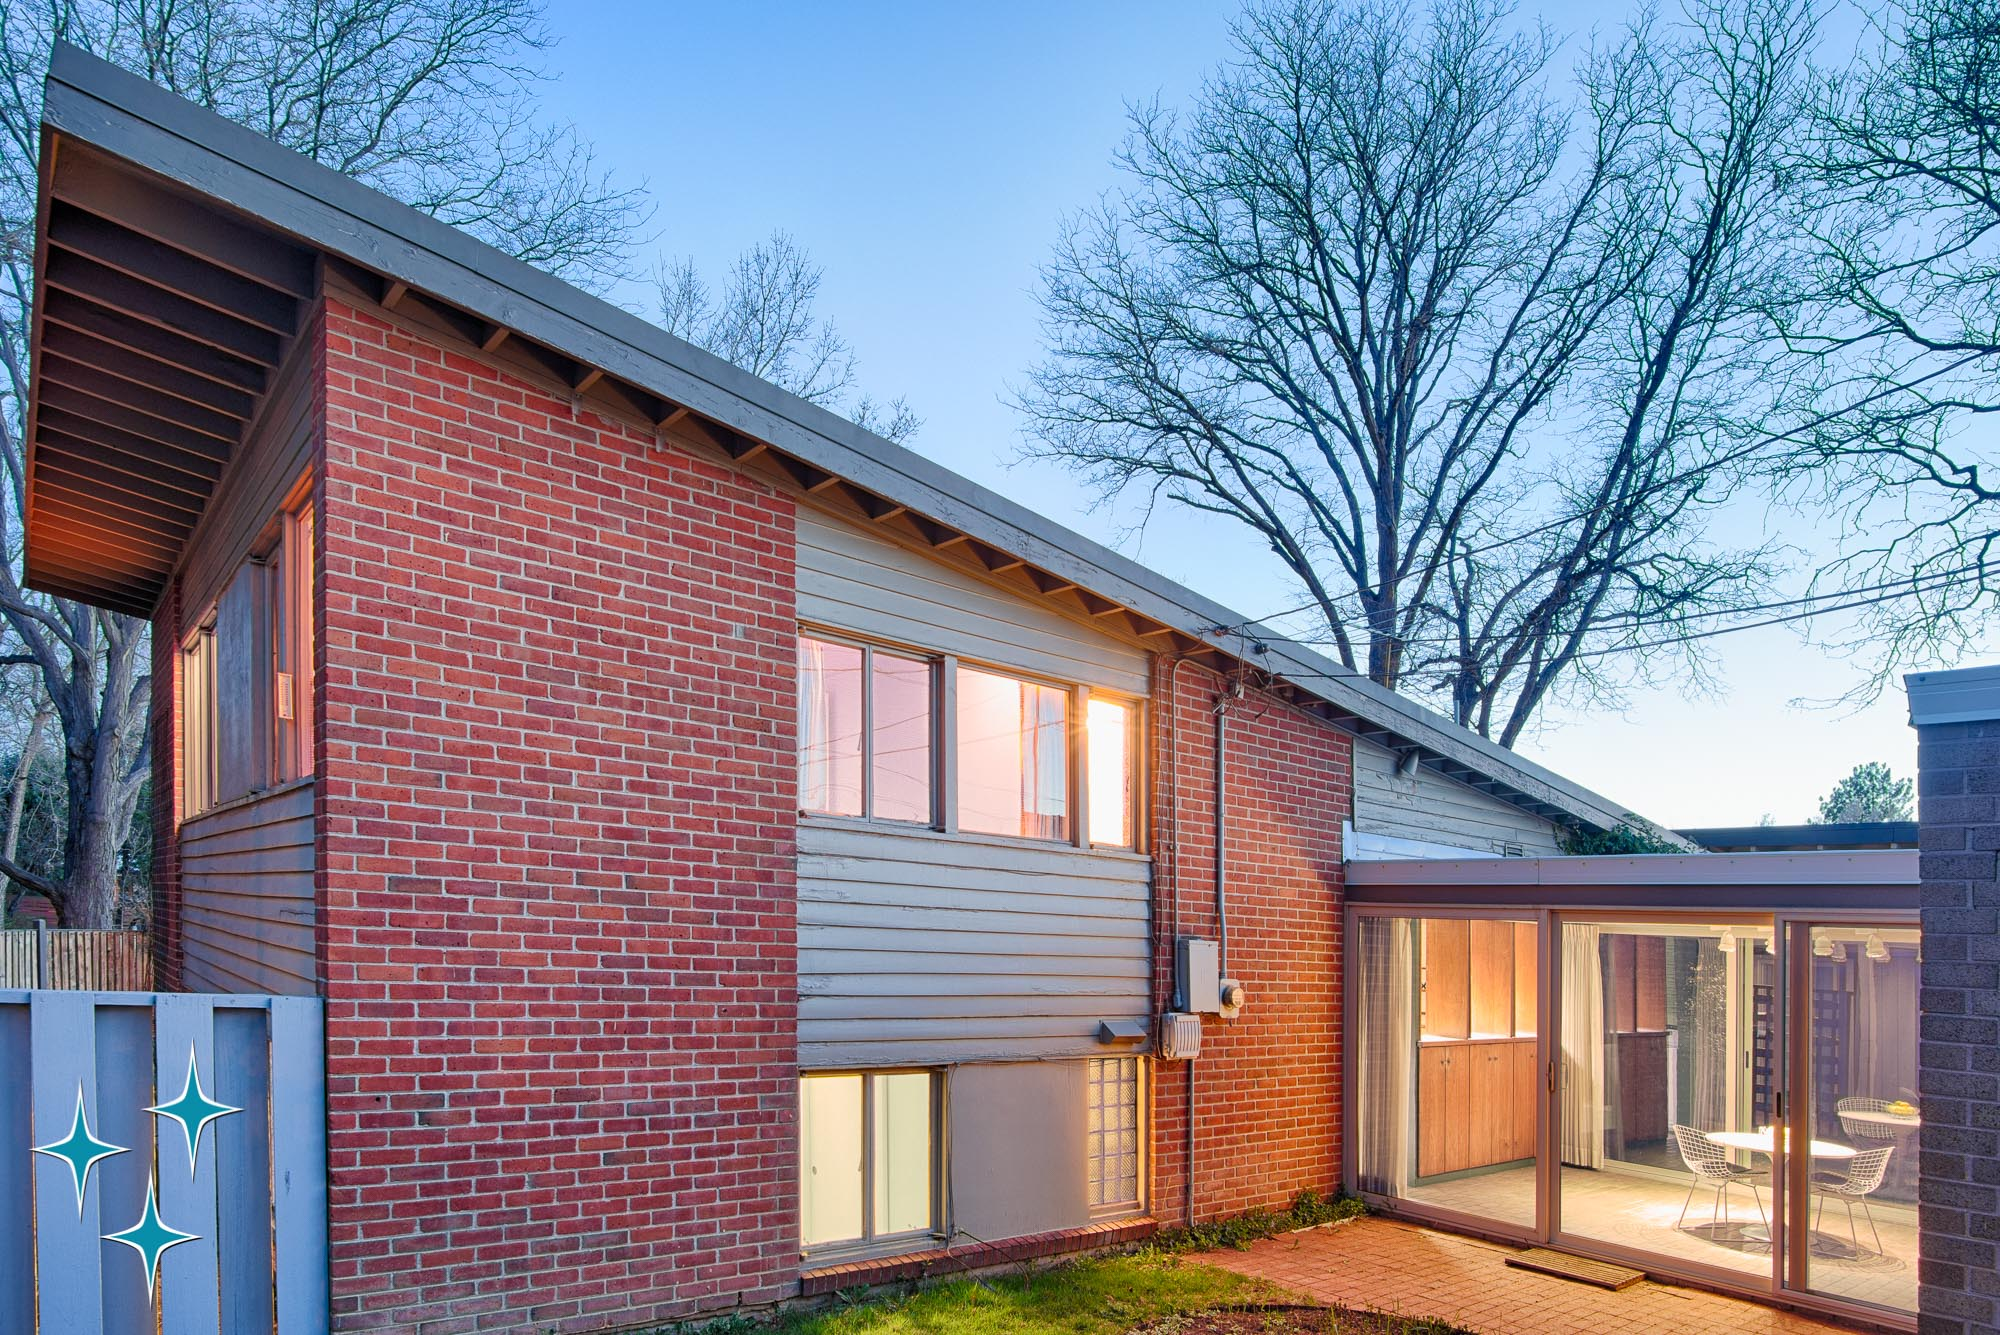 2403 South Dahlia Lane, tri-level designed by Denver architect Eugene Sternberg. An ultra-modern pavilion was added behind the house after it was built. Offered by Adrian Kinney, Broker Associate, Resident Realty South Metro